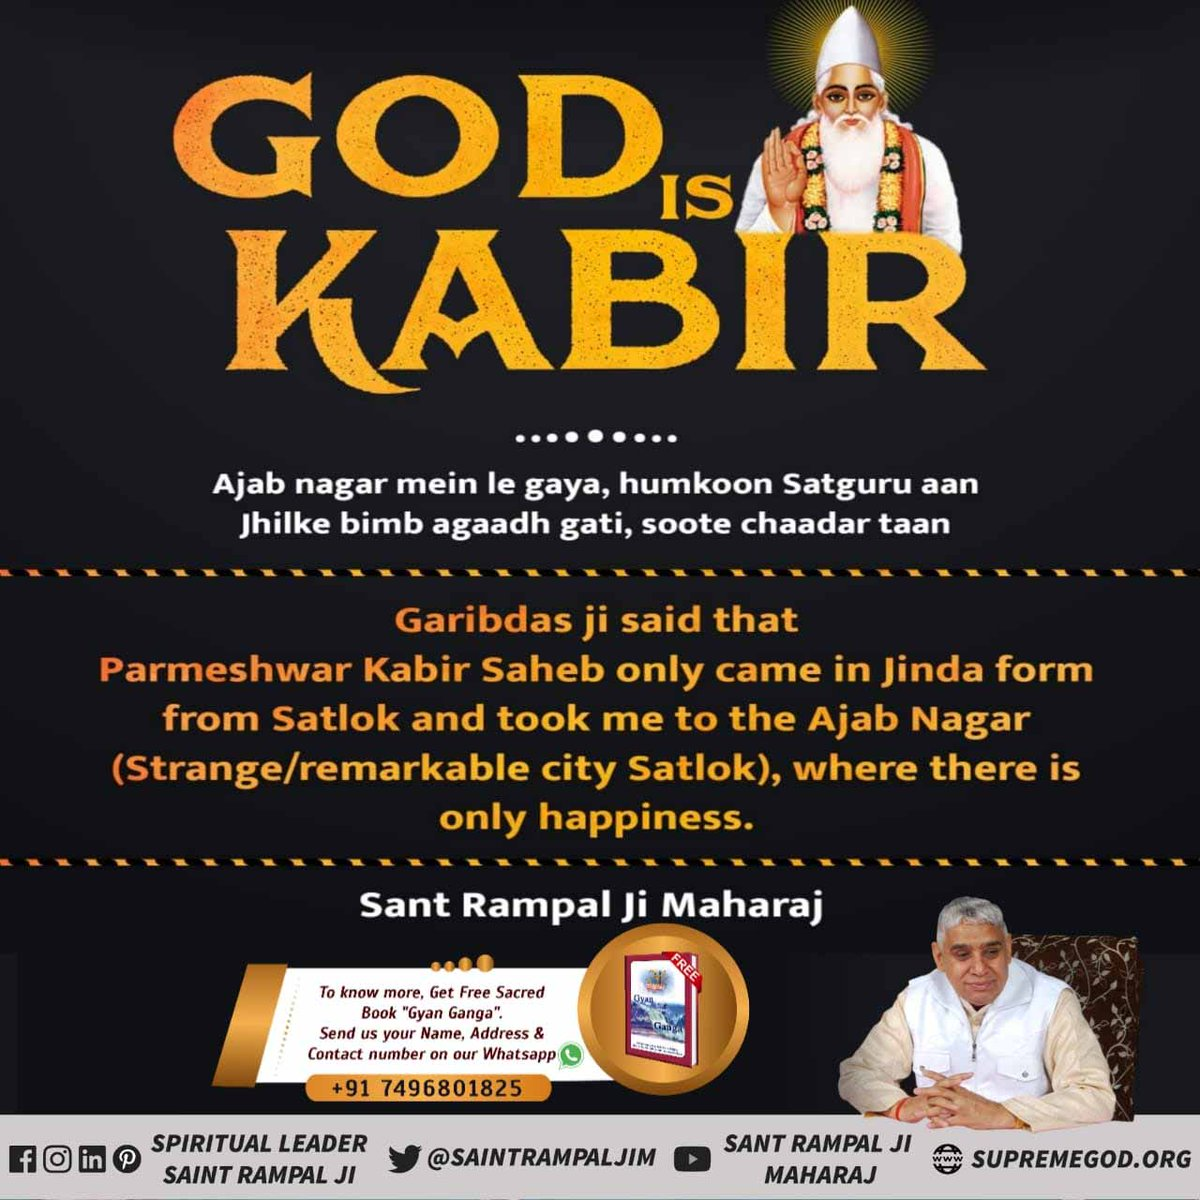 #EyeWitnessOfGod Lord Kabir Ji is the merciful God Due to this kindness, he comes in every era to free the souls trapped in Kaal Lok. For more info visit @SatlokAshram YouTube  Channel   Must watch Shraddha TV 2:00 pm